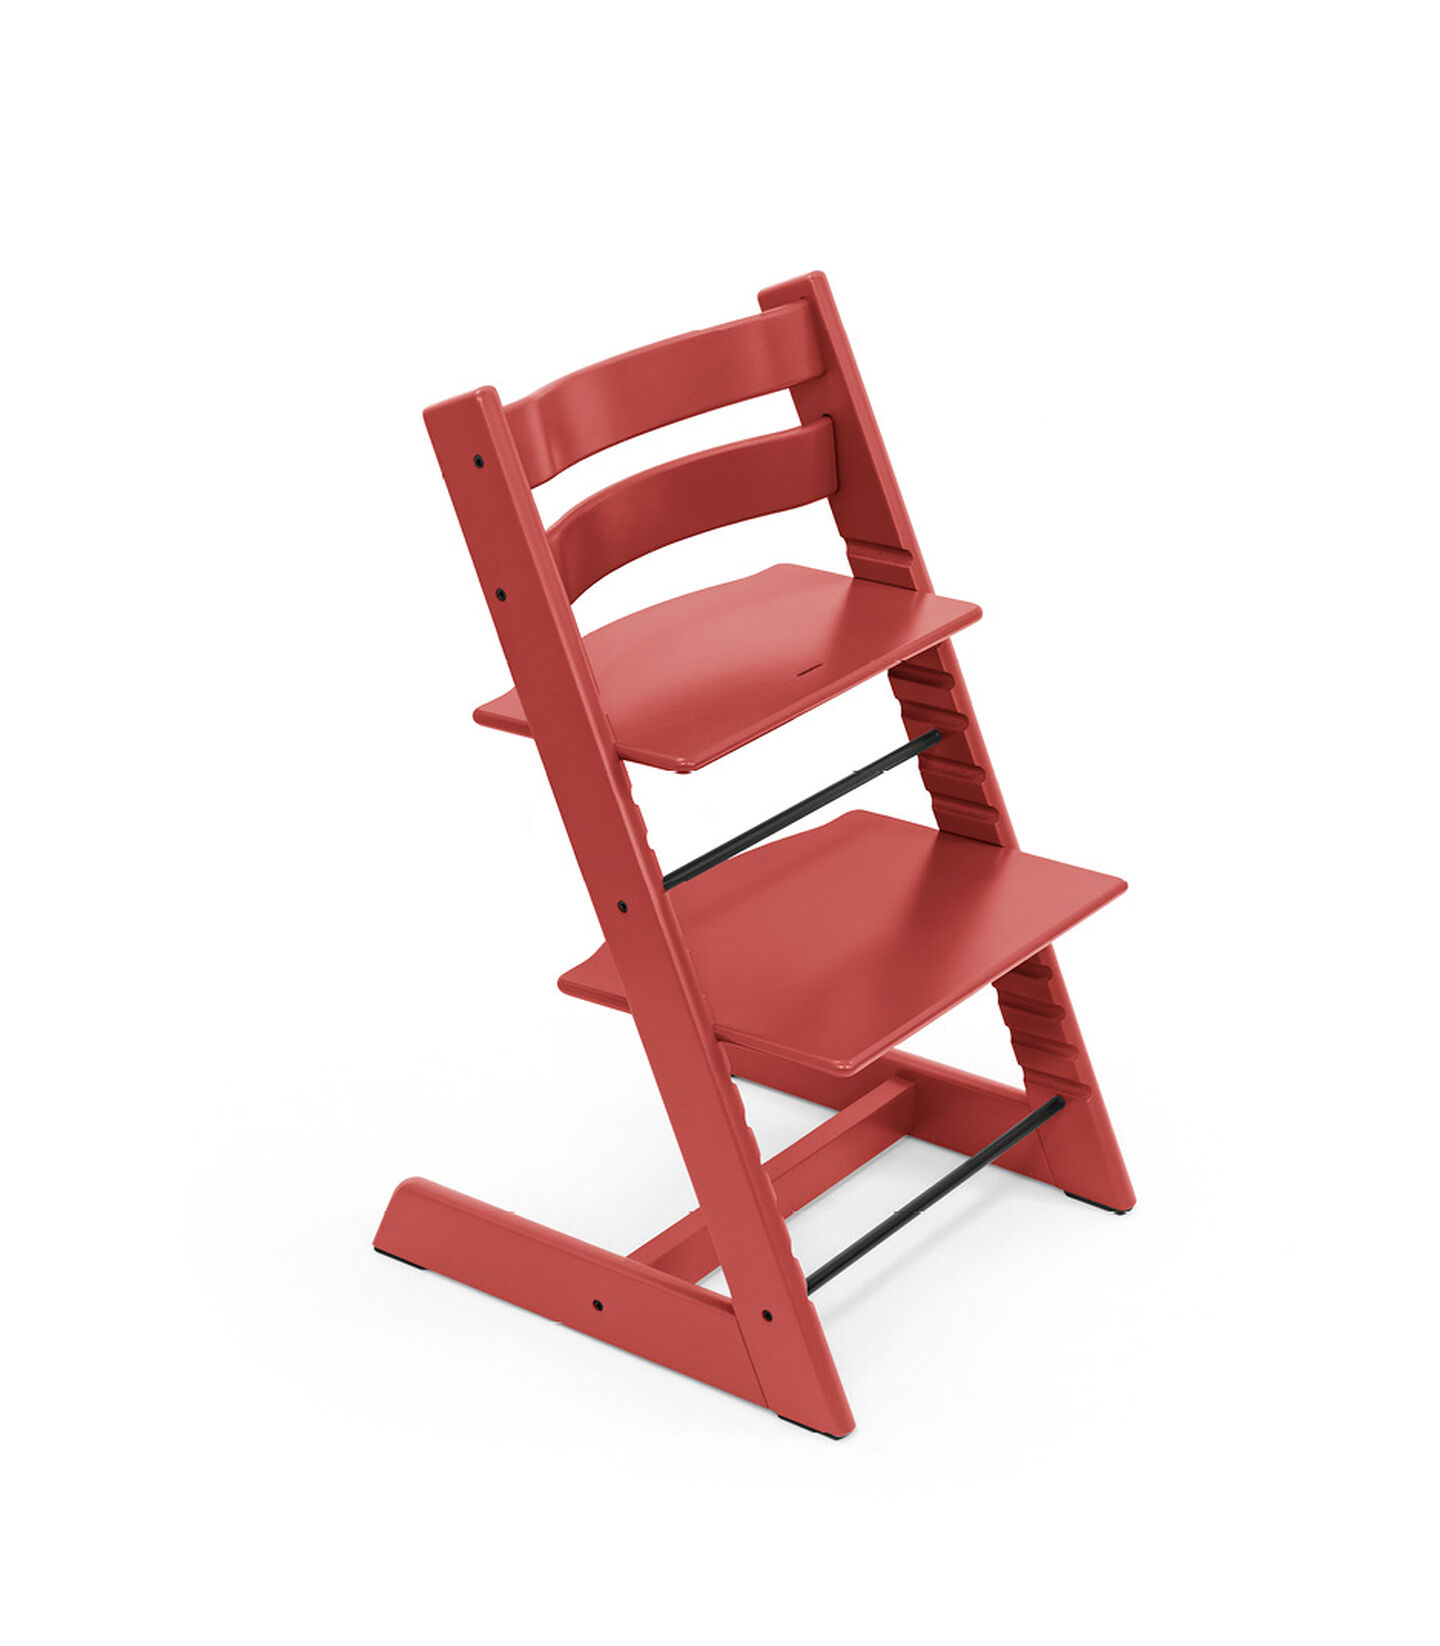 Tripp Trapp® chair Warm Red, Beech Wood. view 2